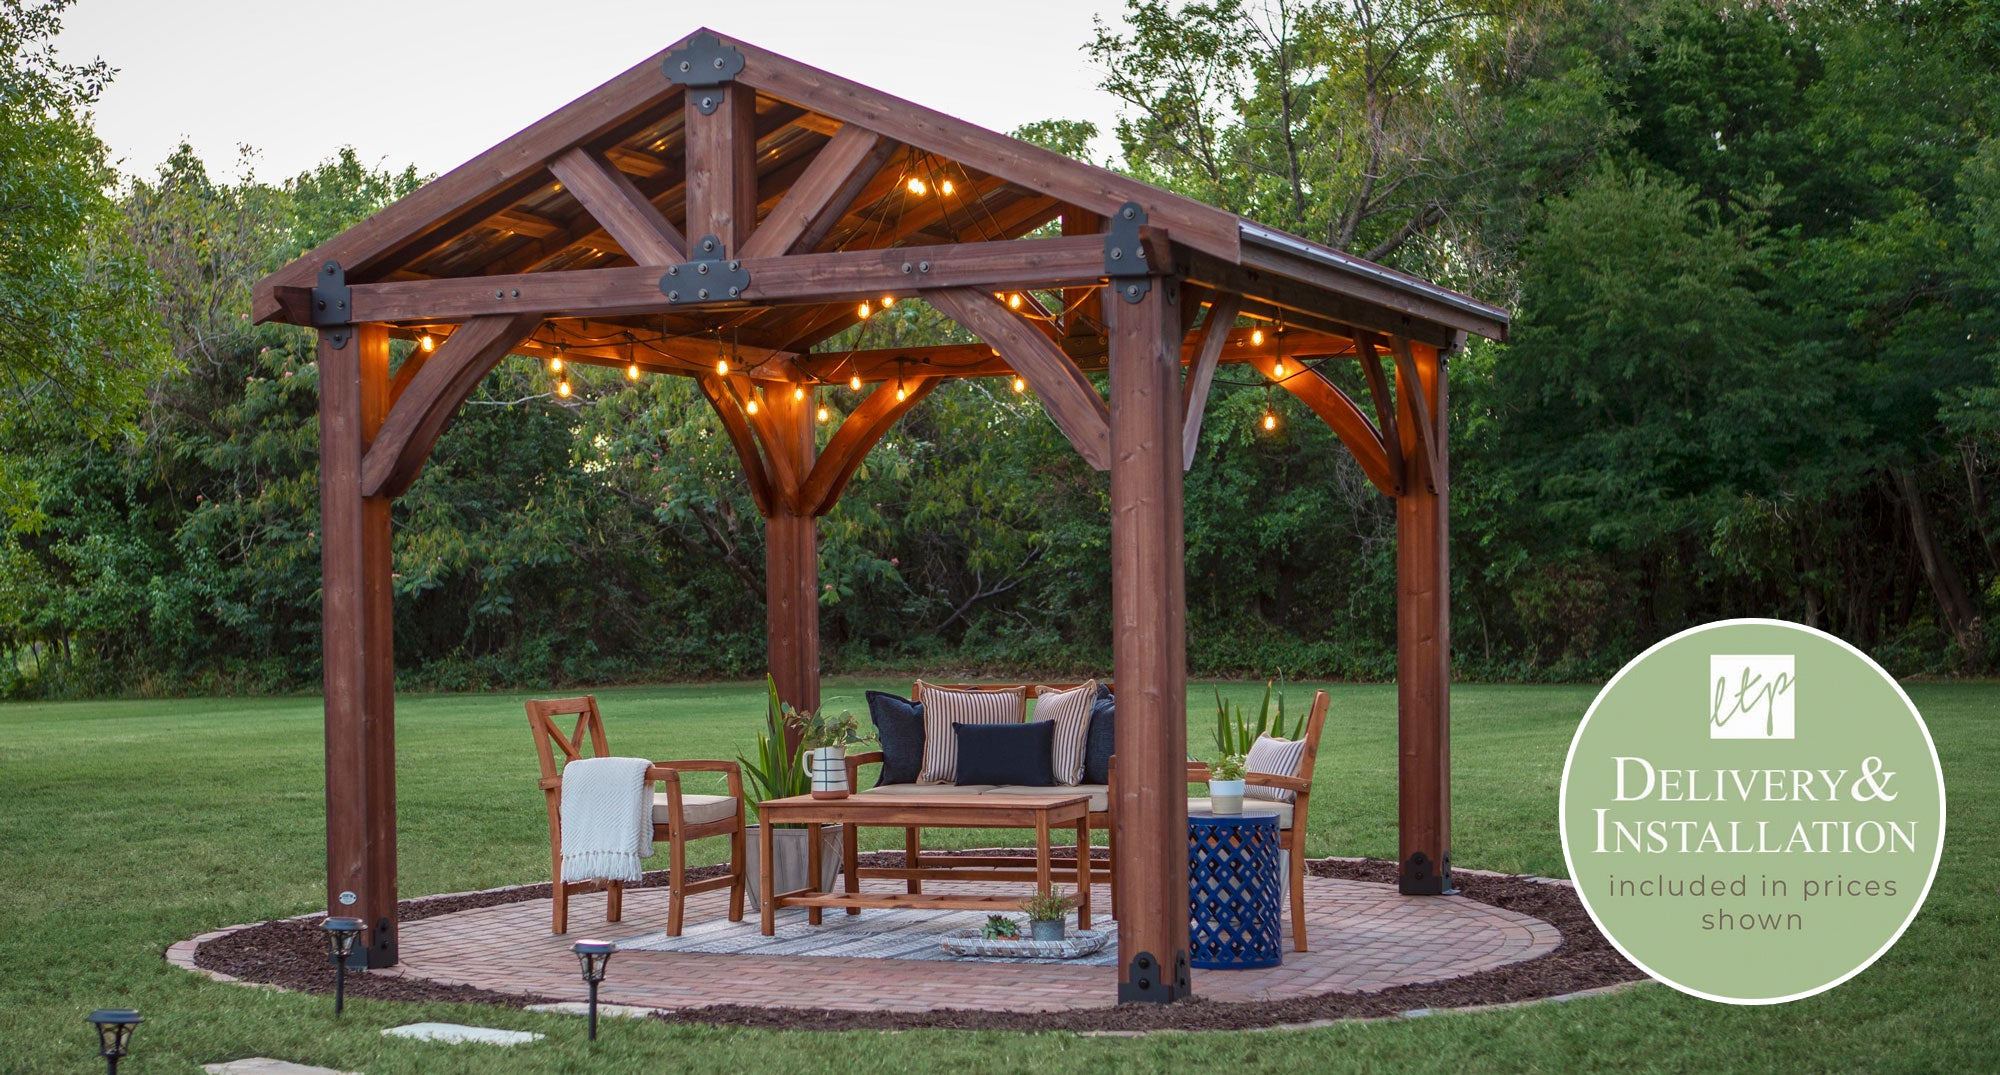 Sonora 12x12 Gazebo Installation and Delivery | Leisure Time